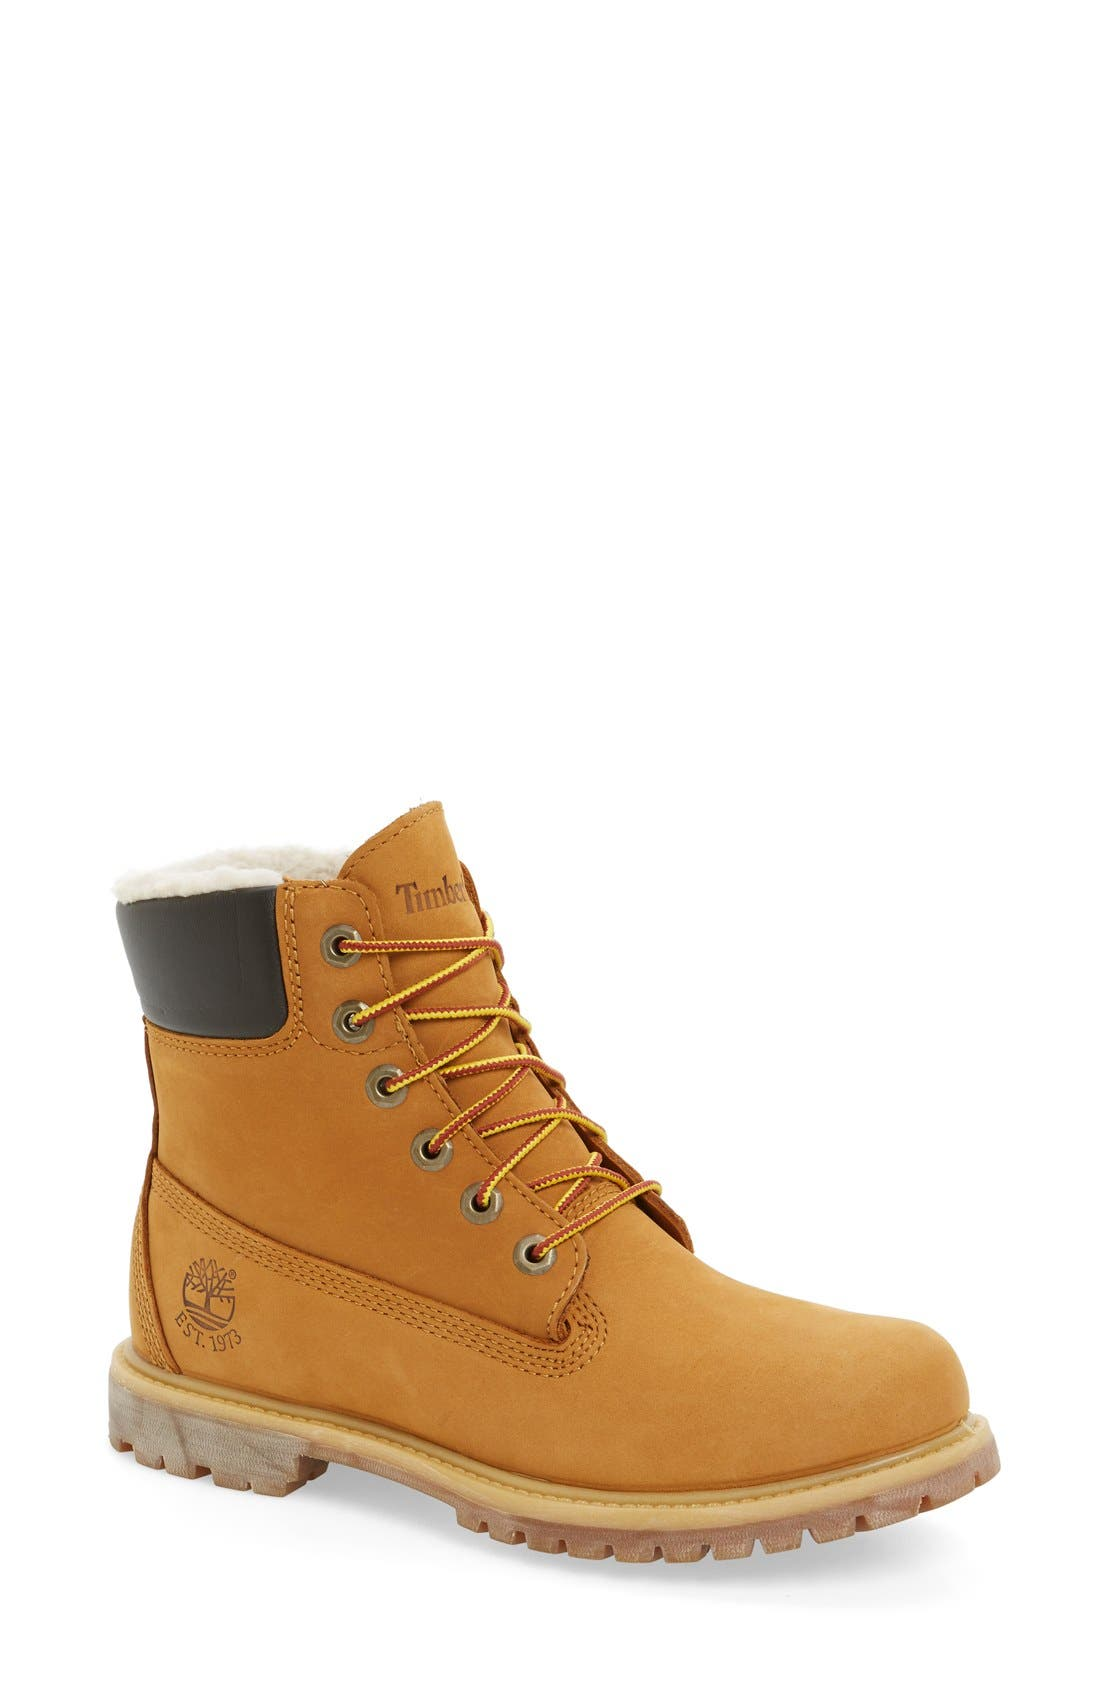 Main Image - Timberland 6 Inch Waterproof Boot (Women)